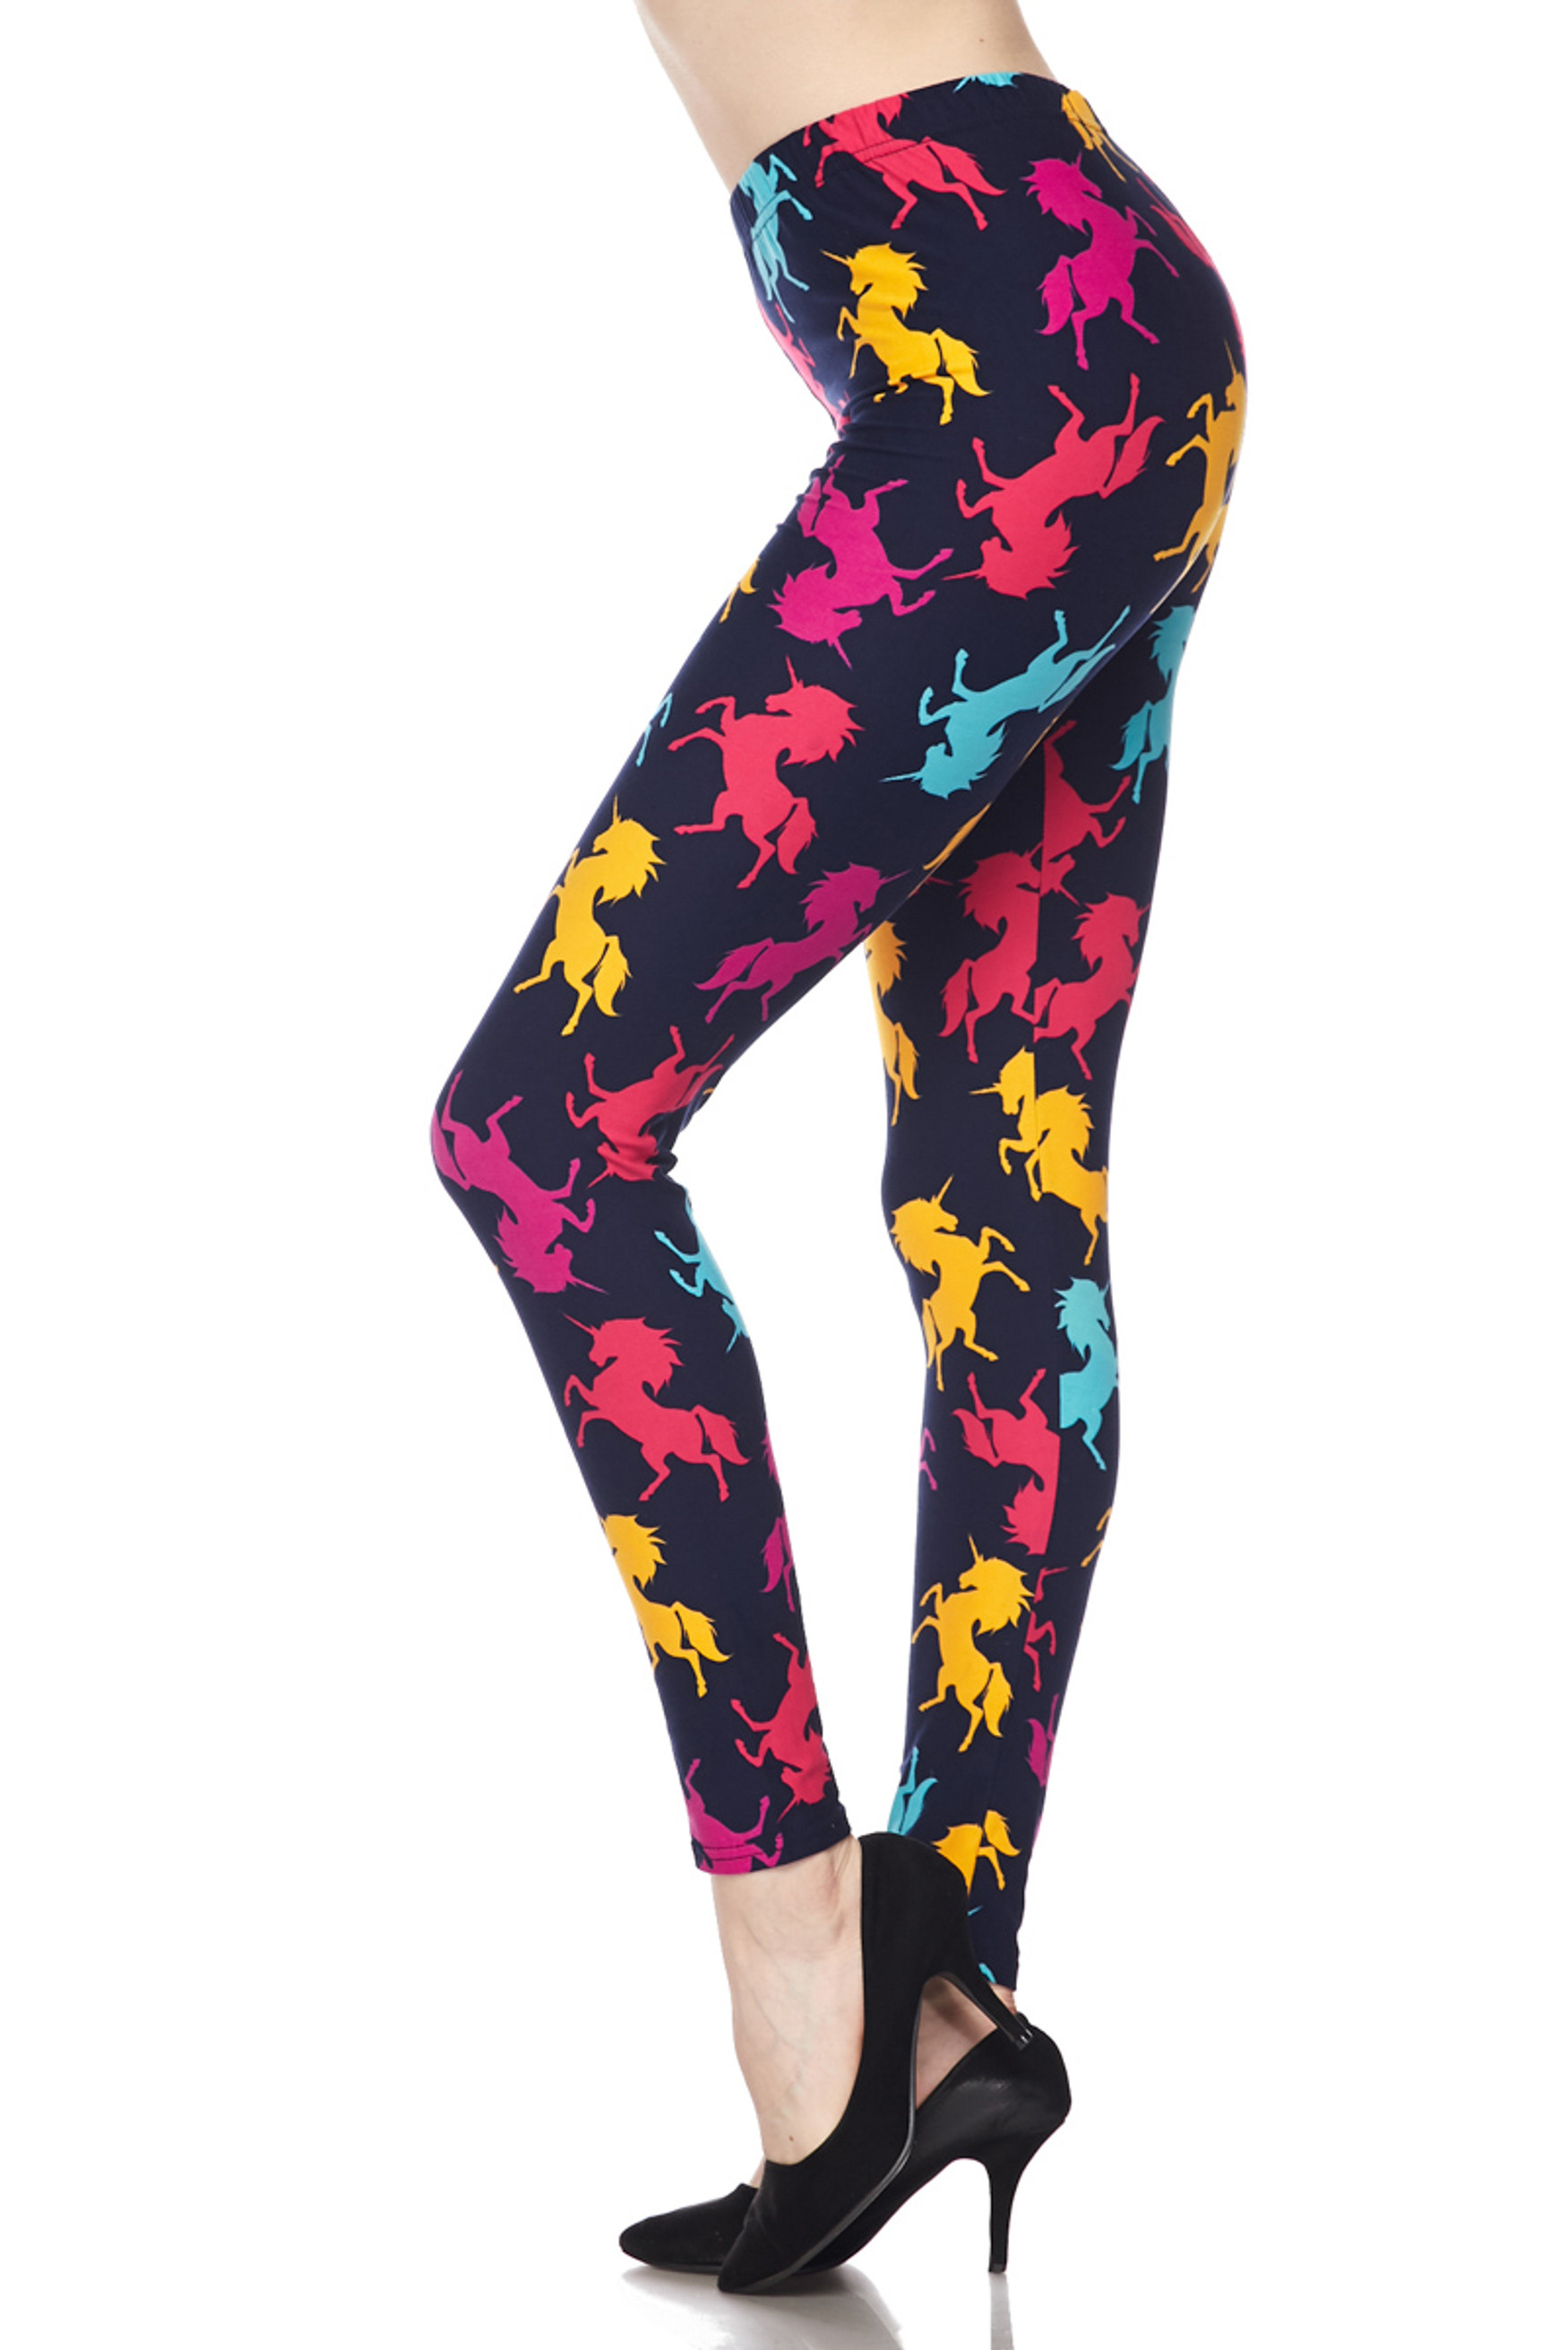 Brushed Colorful Unicorns Plus Size Leggings